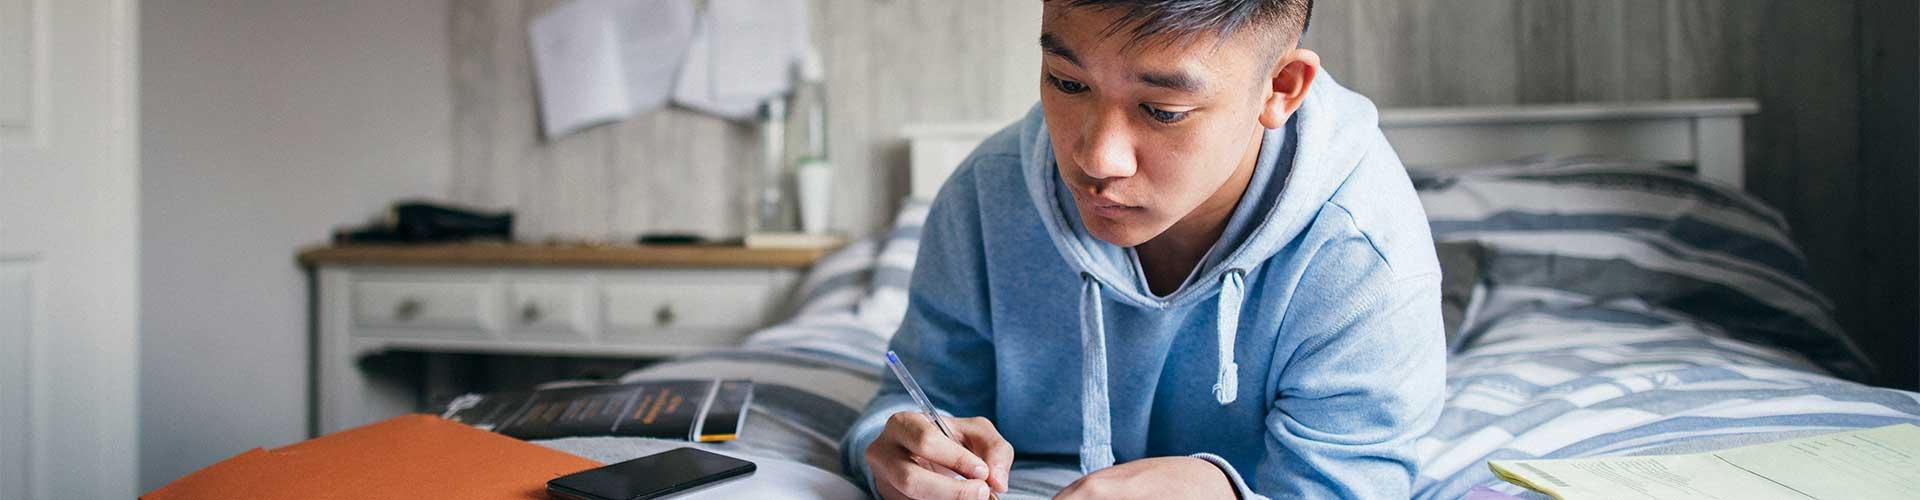 Student does homework on bed